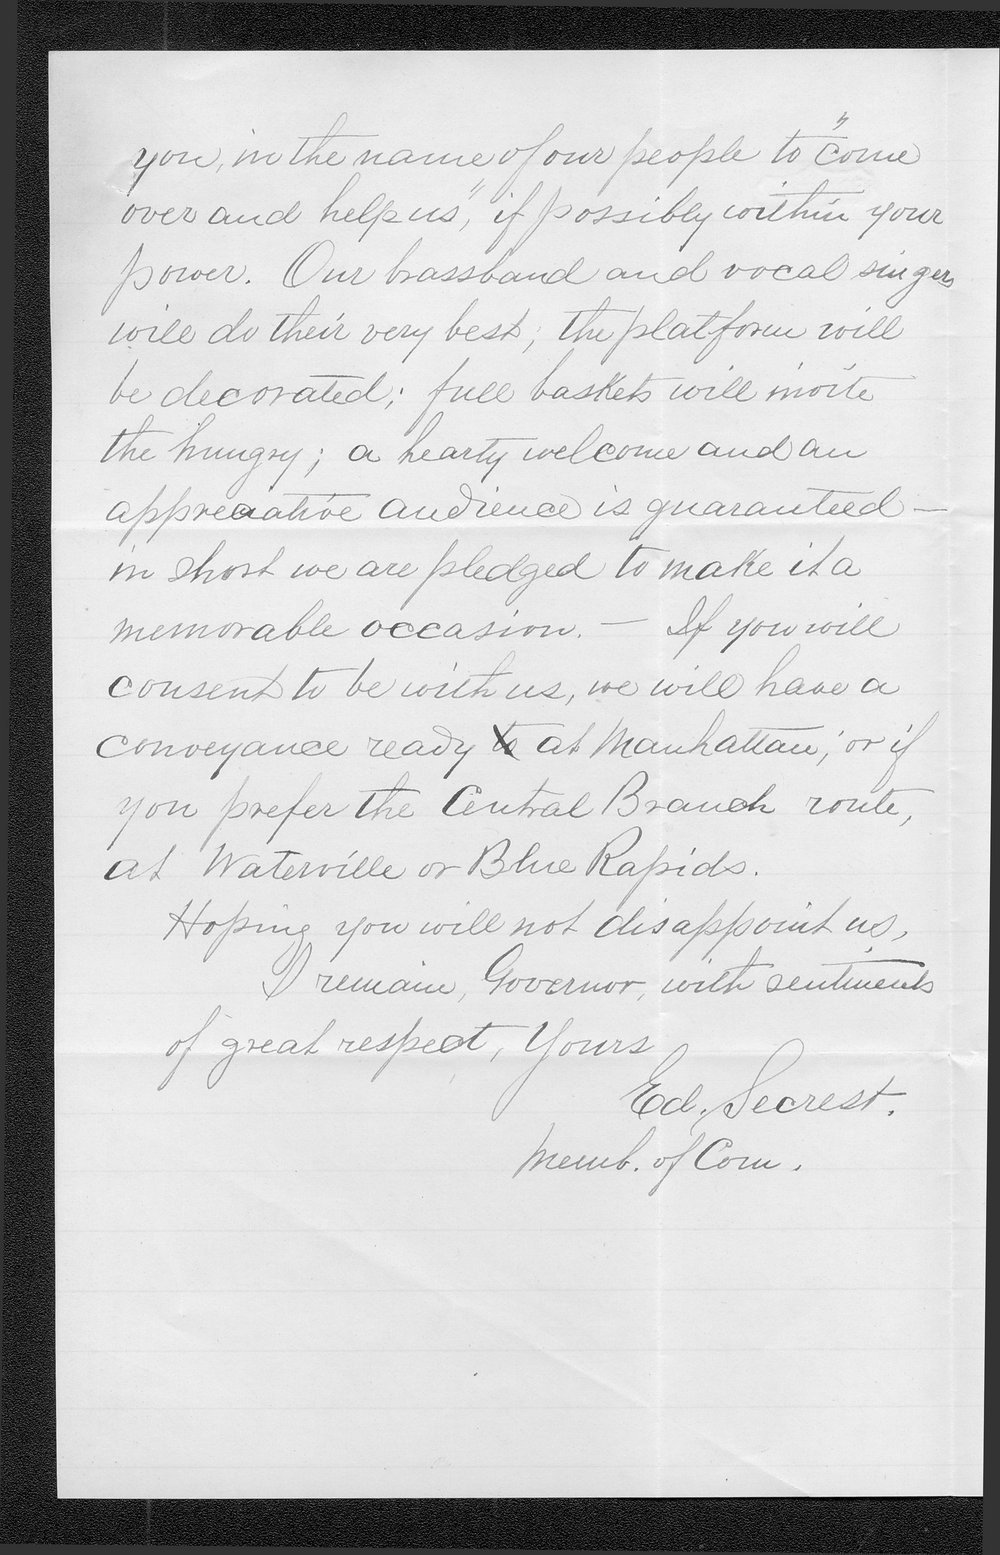 Ed Secrest to Governor John St. John - 2